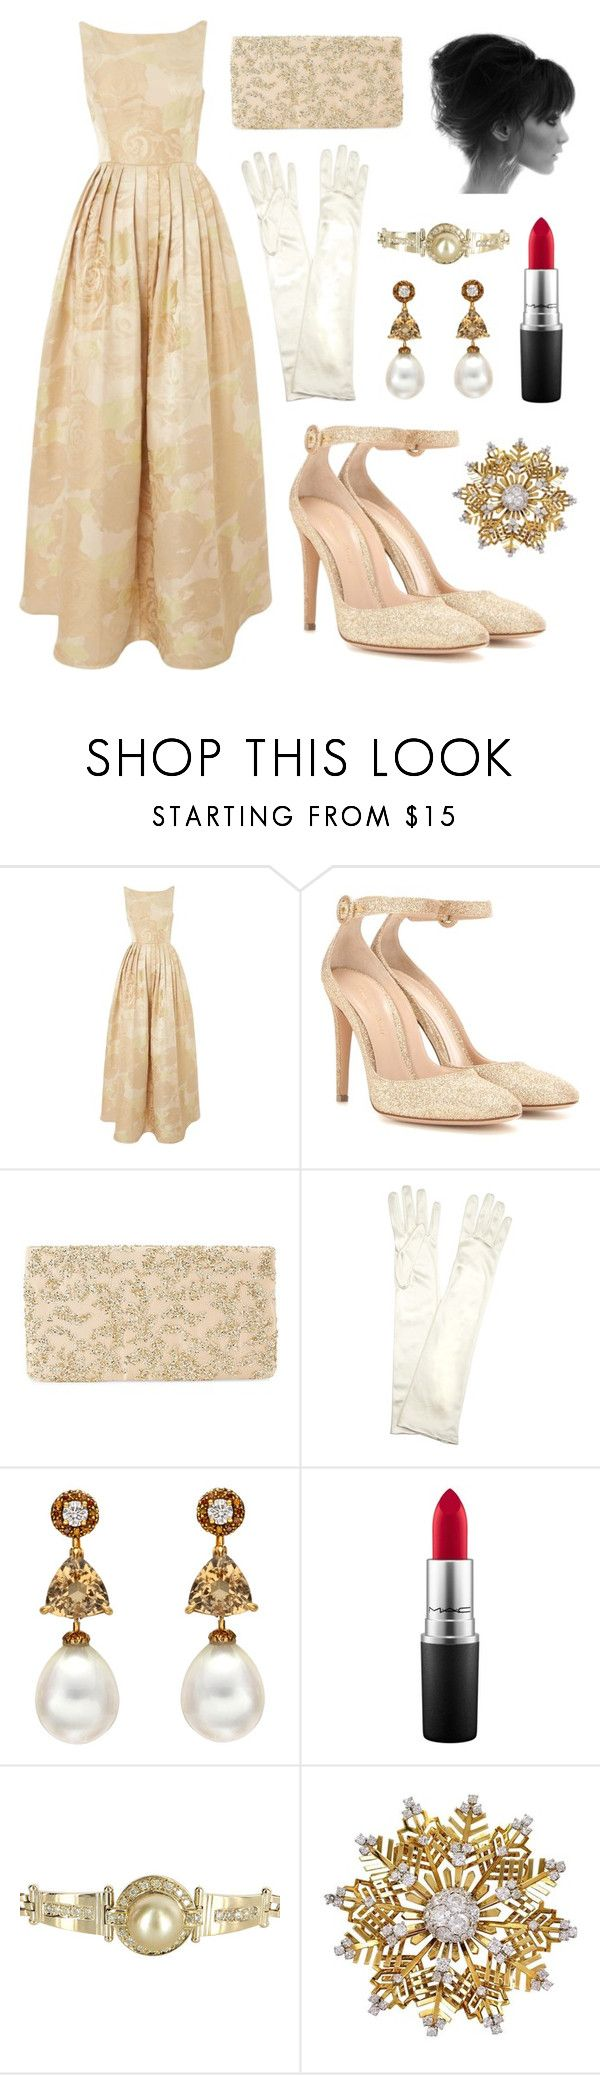 """""""Audrey Hepburn"""" by theprissydiary ❤ liked on Polyvore featuring Adrianna Papell, Ray-Ban, Gianvito Rossi, John Lewis, MAC Cosmetics, Vintage and Van Cleef & Arpels"""